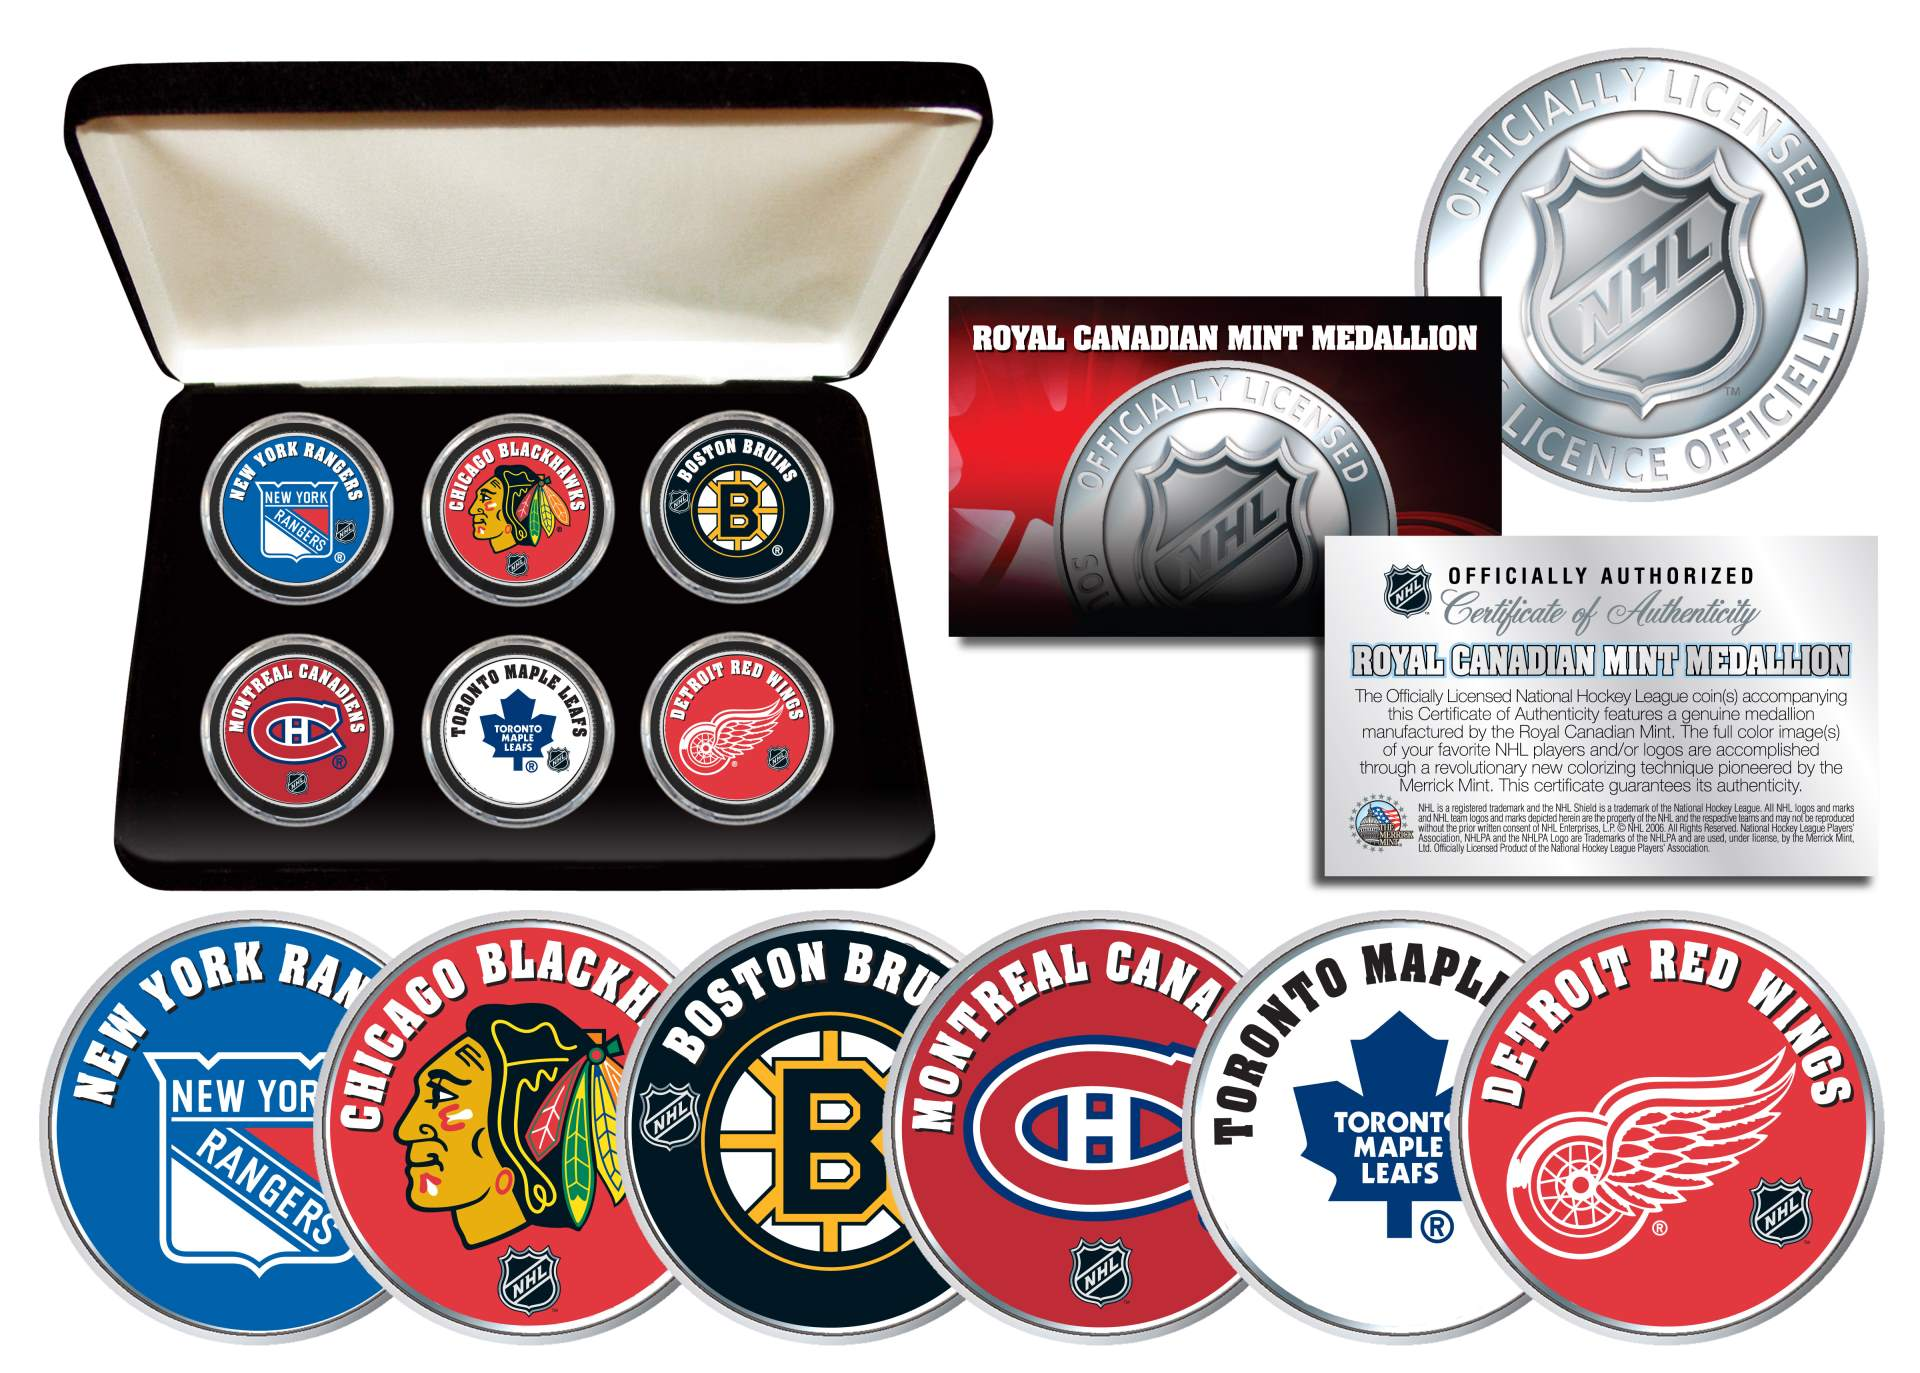 Nhl Original Six Teams Royal Canadian Mint Medallions 6